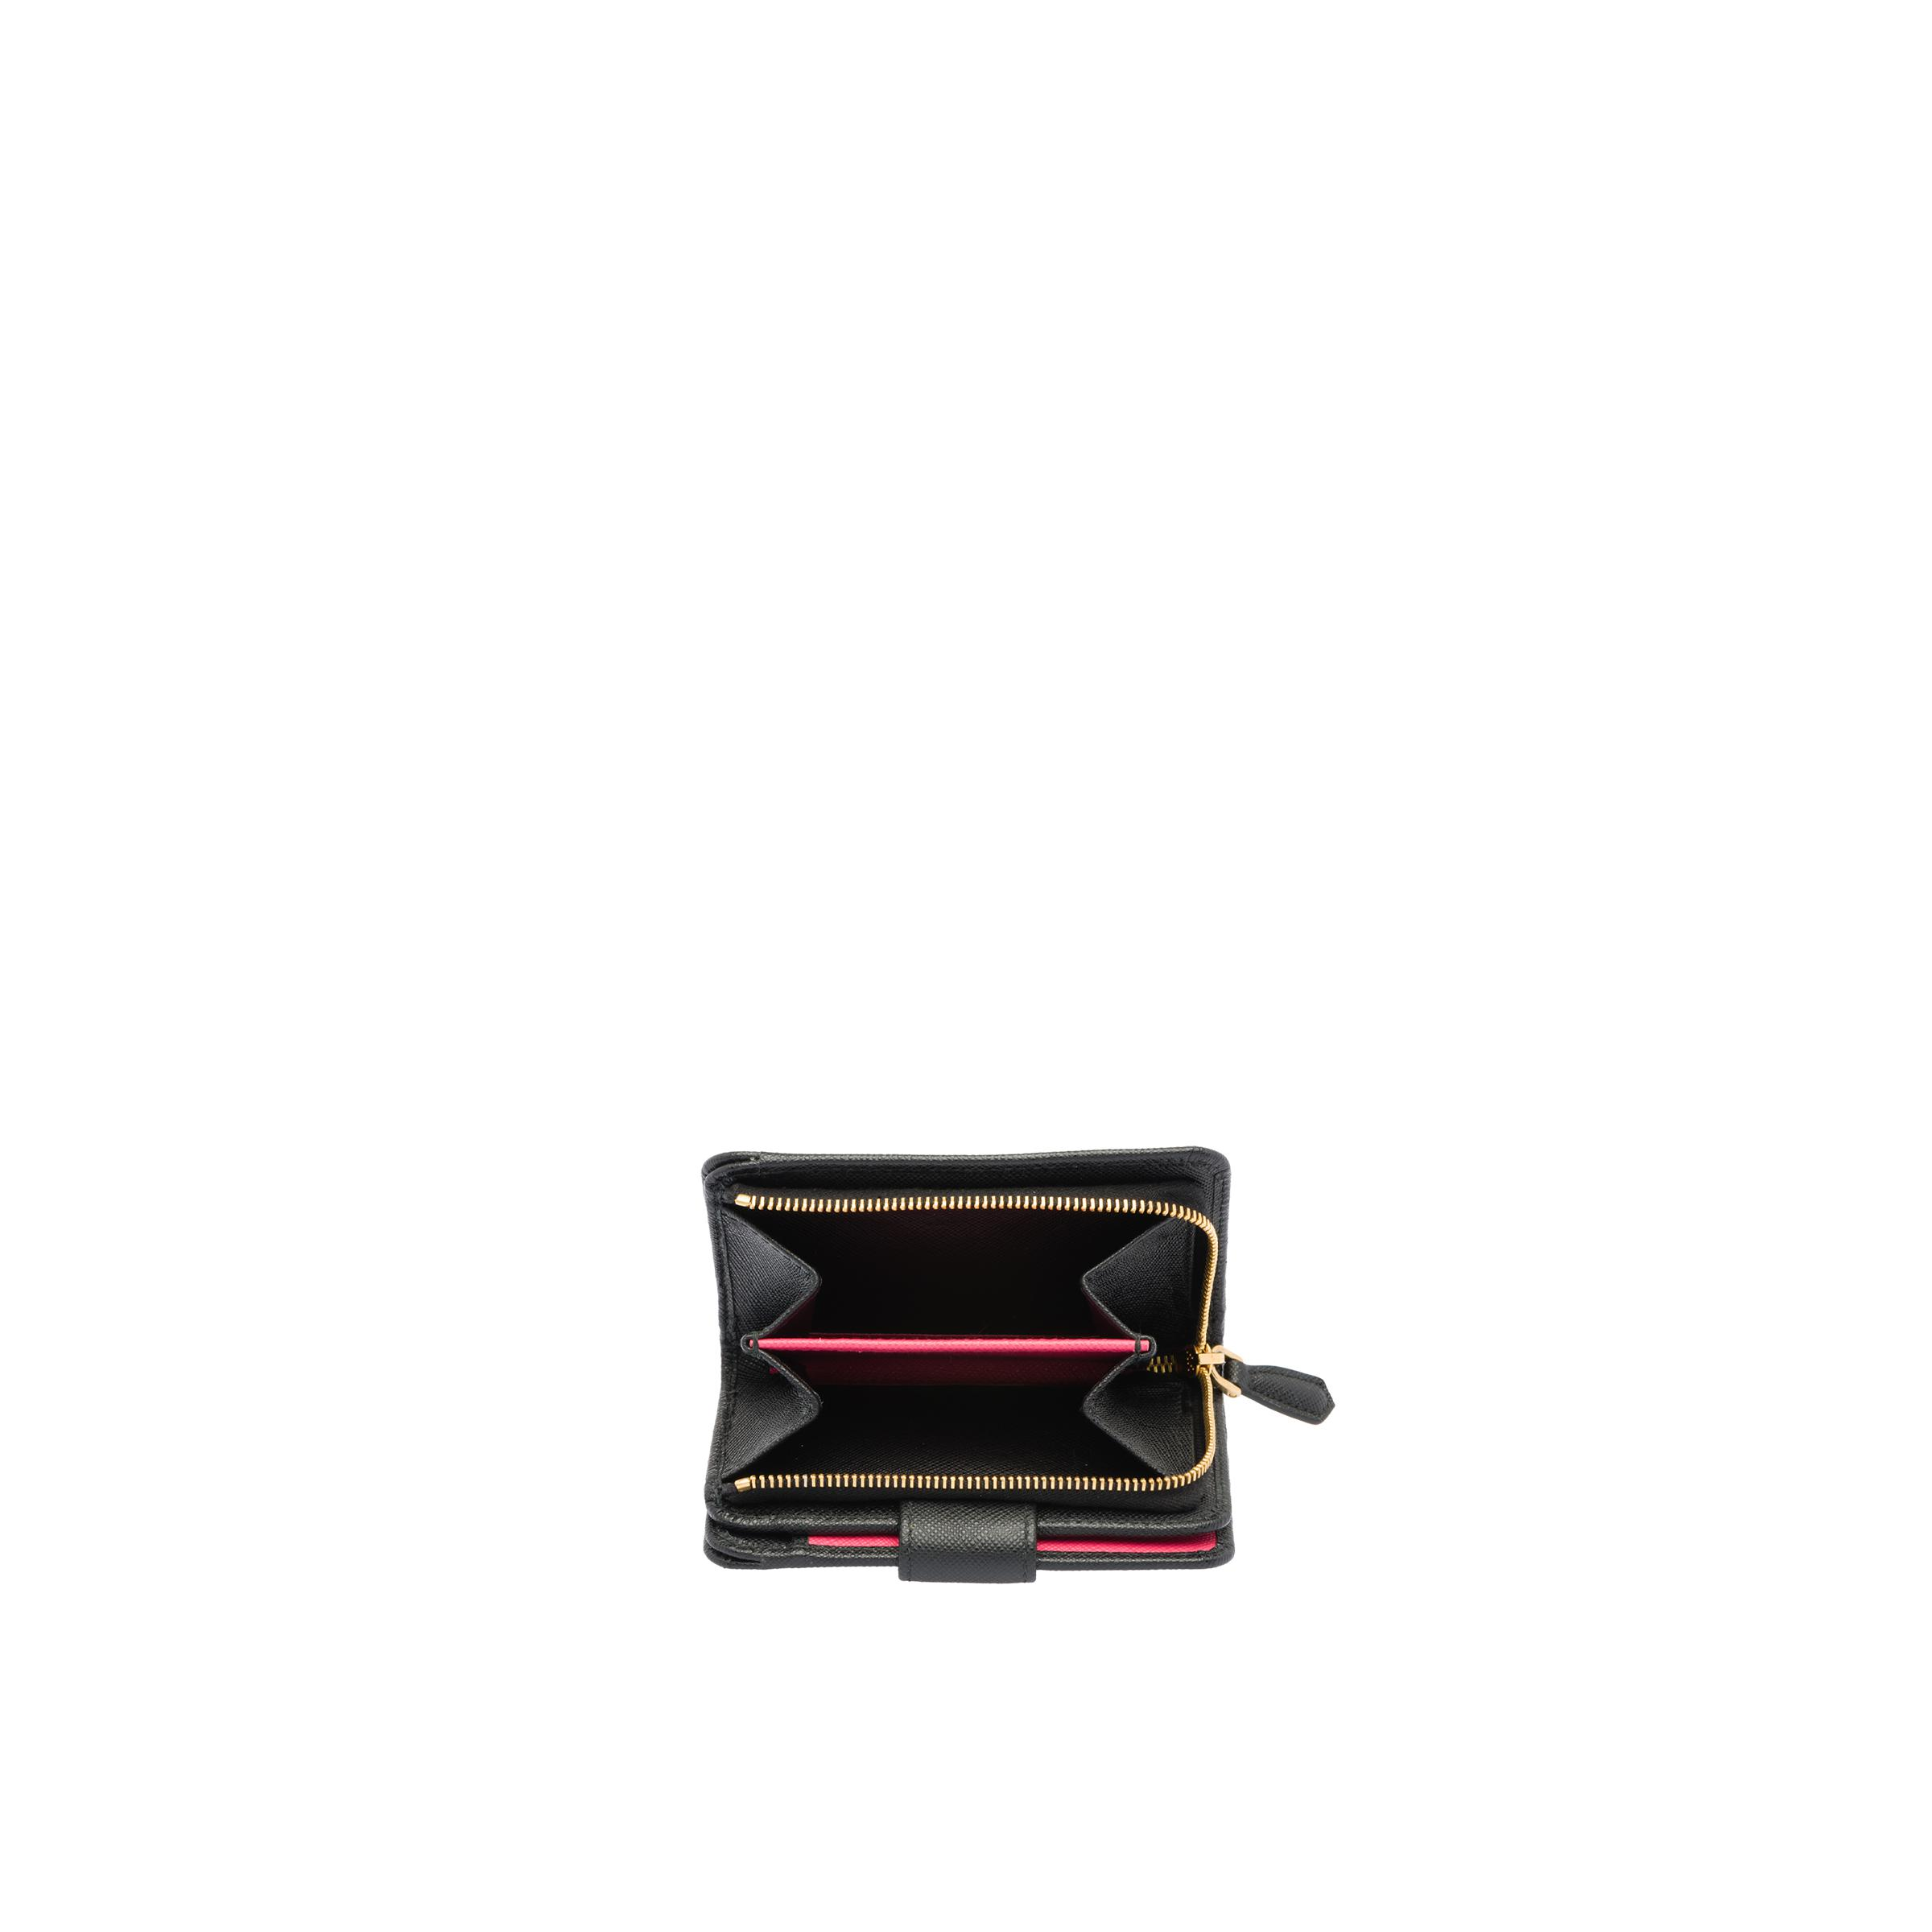 Small Saffiano Leather Wallet Women Black/hibiscus 1